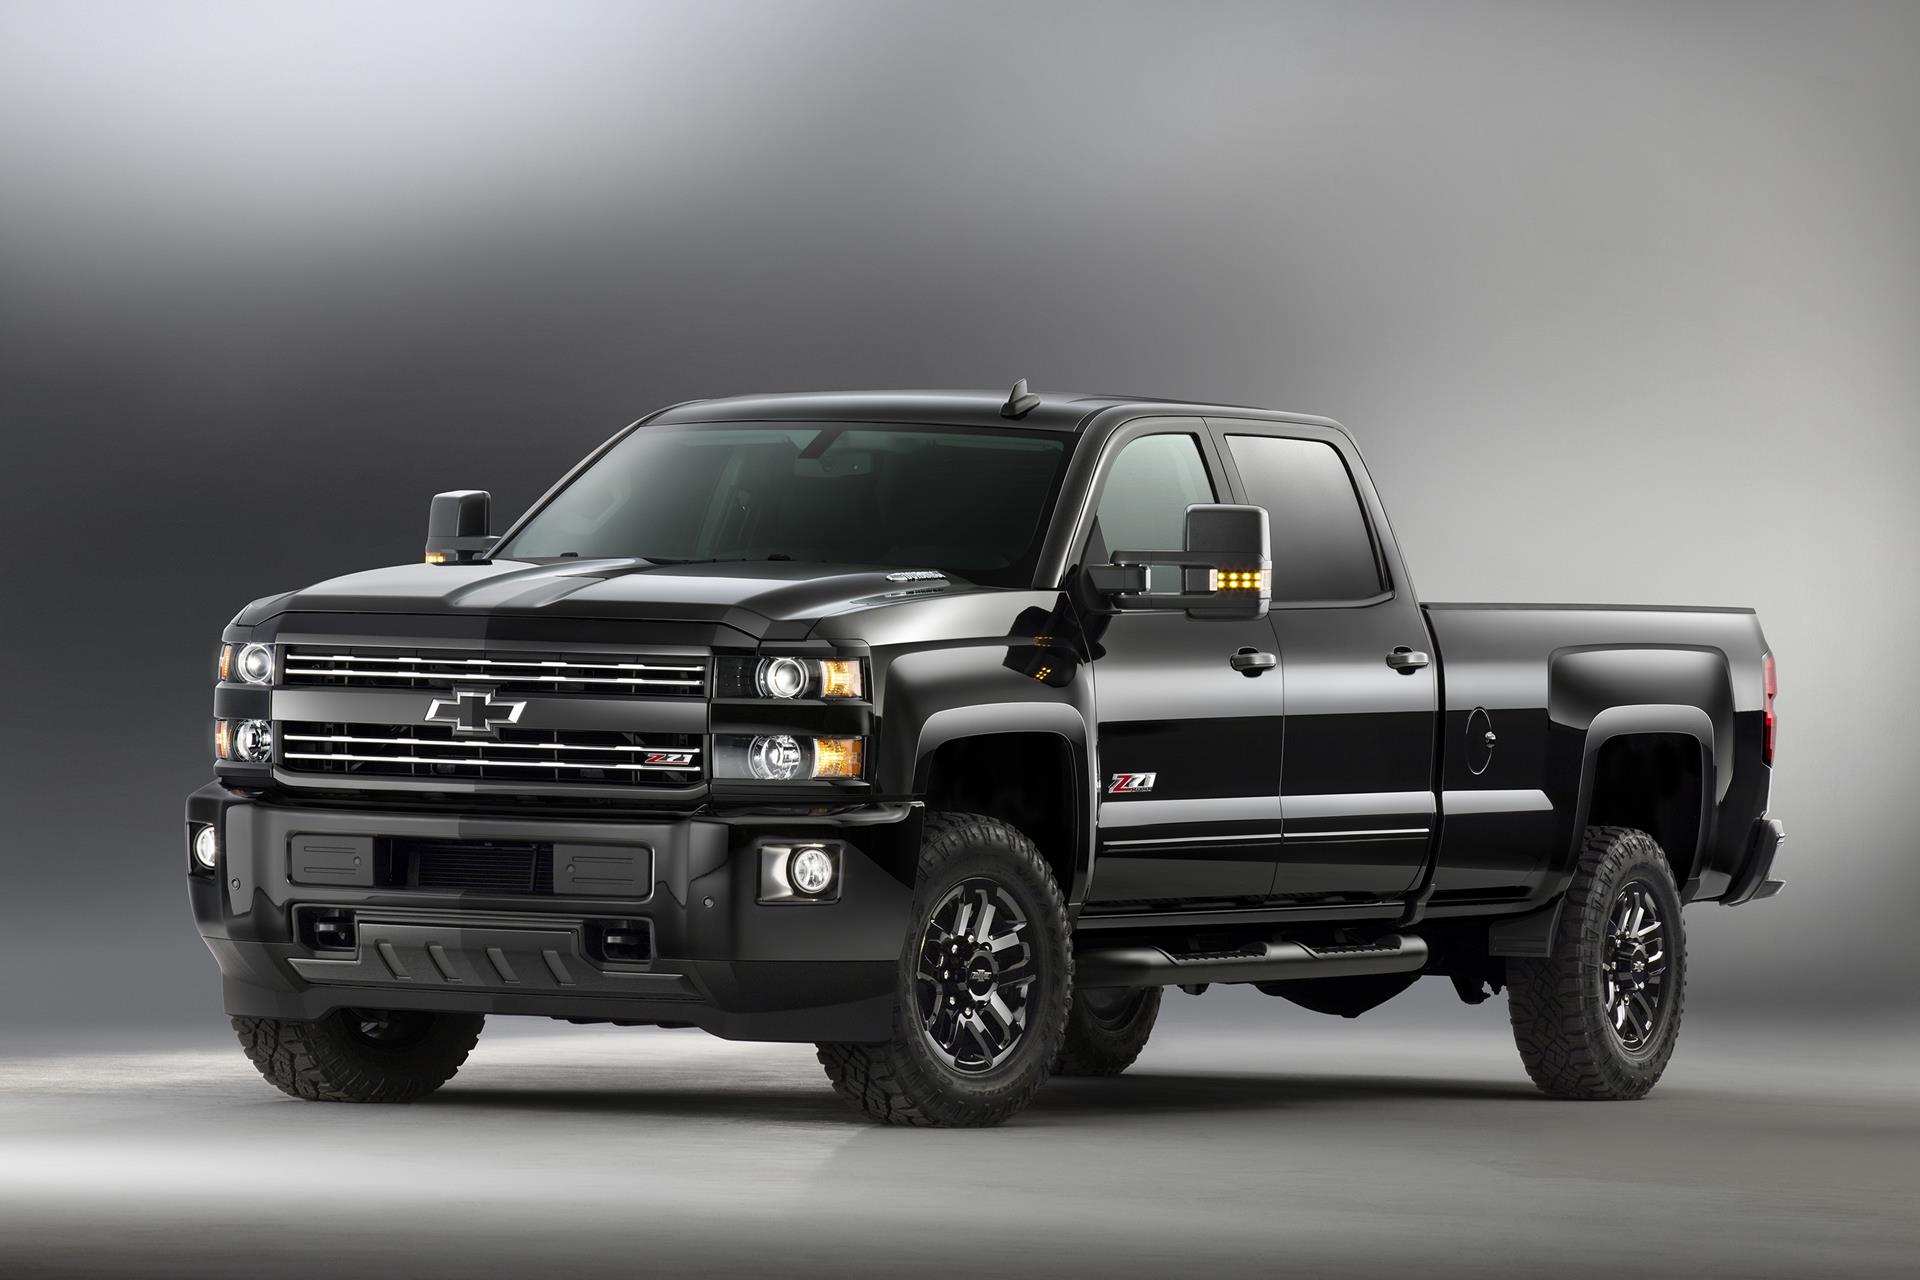 2016 Chevrolet Silverado Z71 Midnight Edition News And Information 1955 2nd Series Chevy Truck Paint Colors